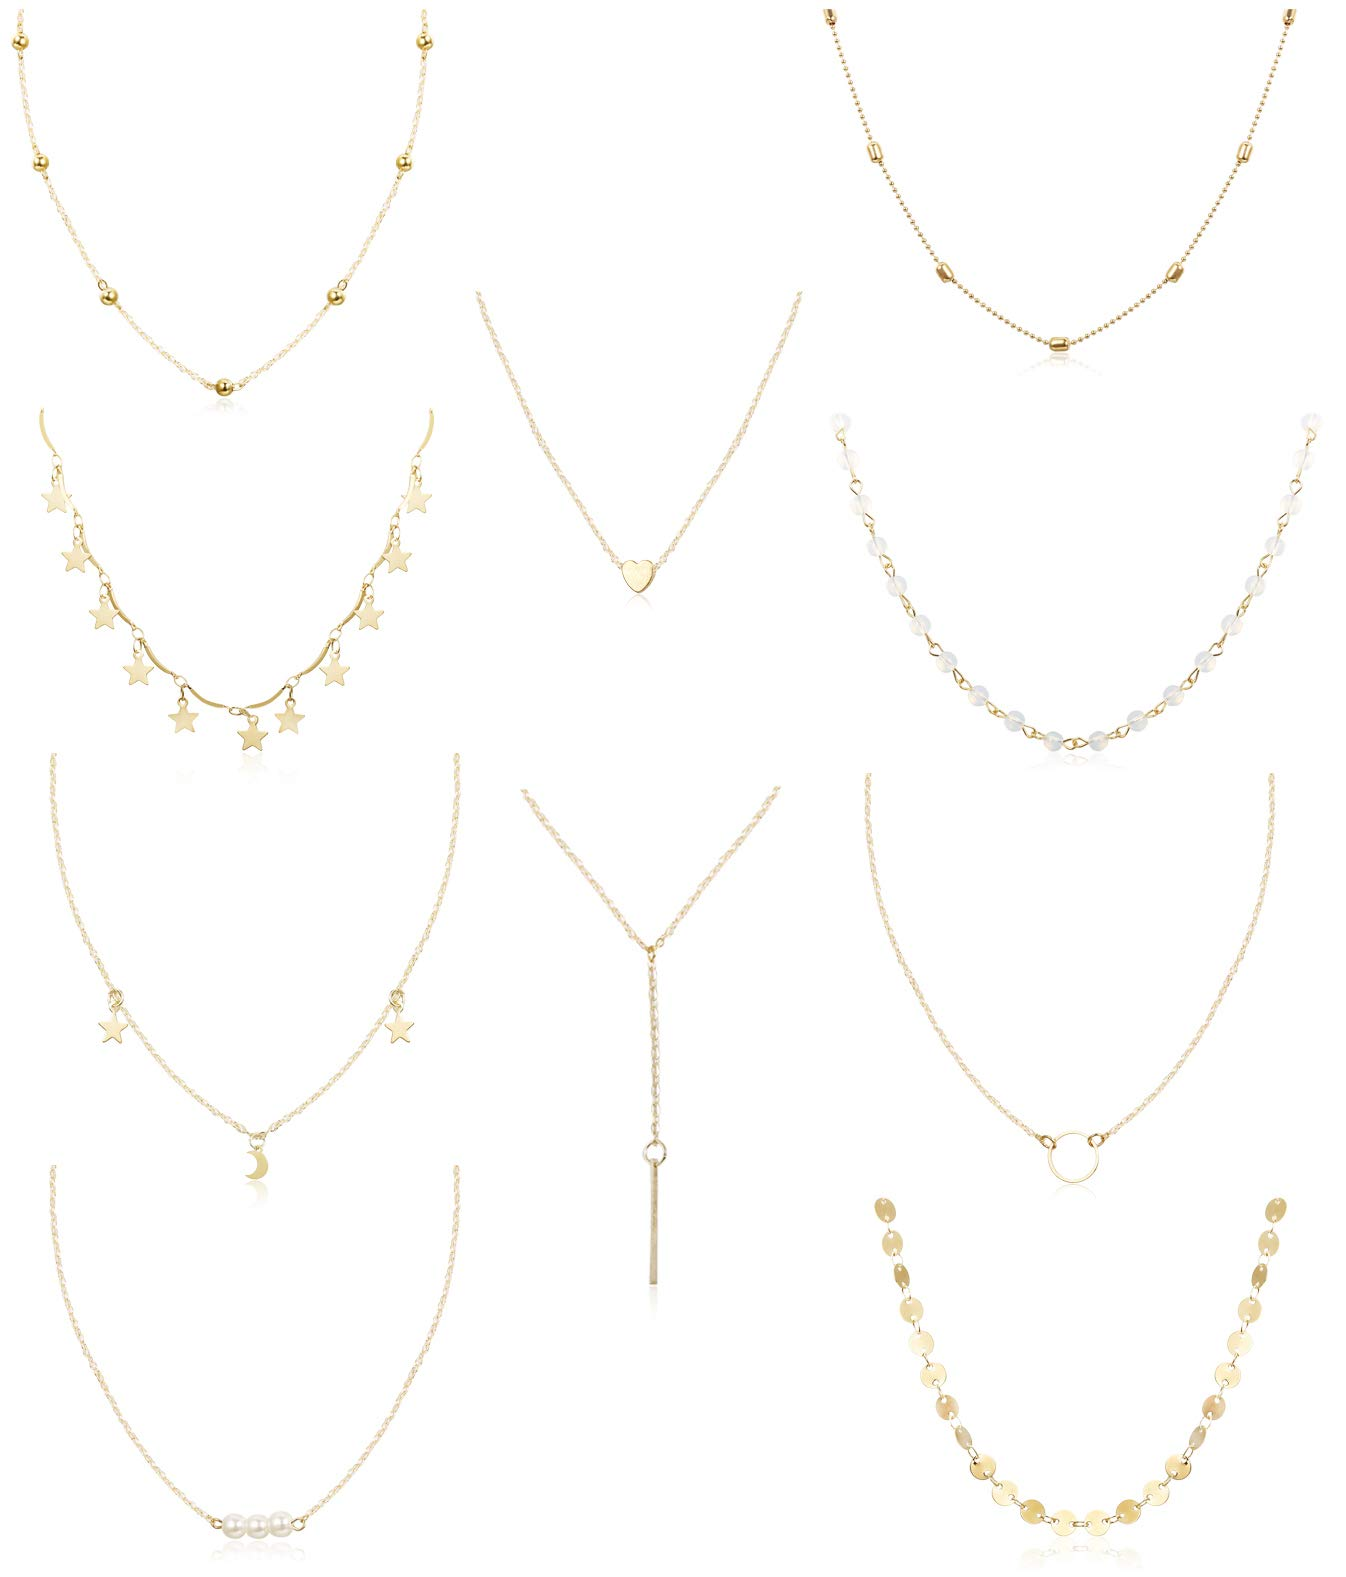 FUNRUN JEWELRY 10PCS Layered Chocker Necklace for Women Girls Multilayer Chain Necklace Set Adjustable (10PCS Gold-Tone)